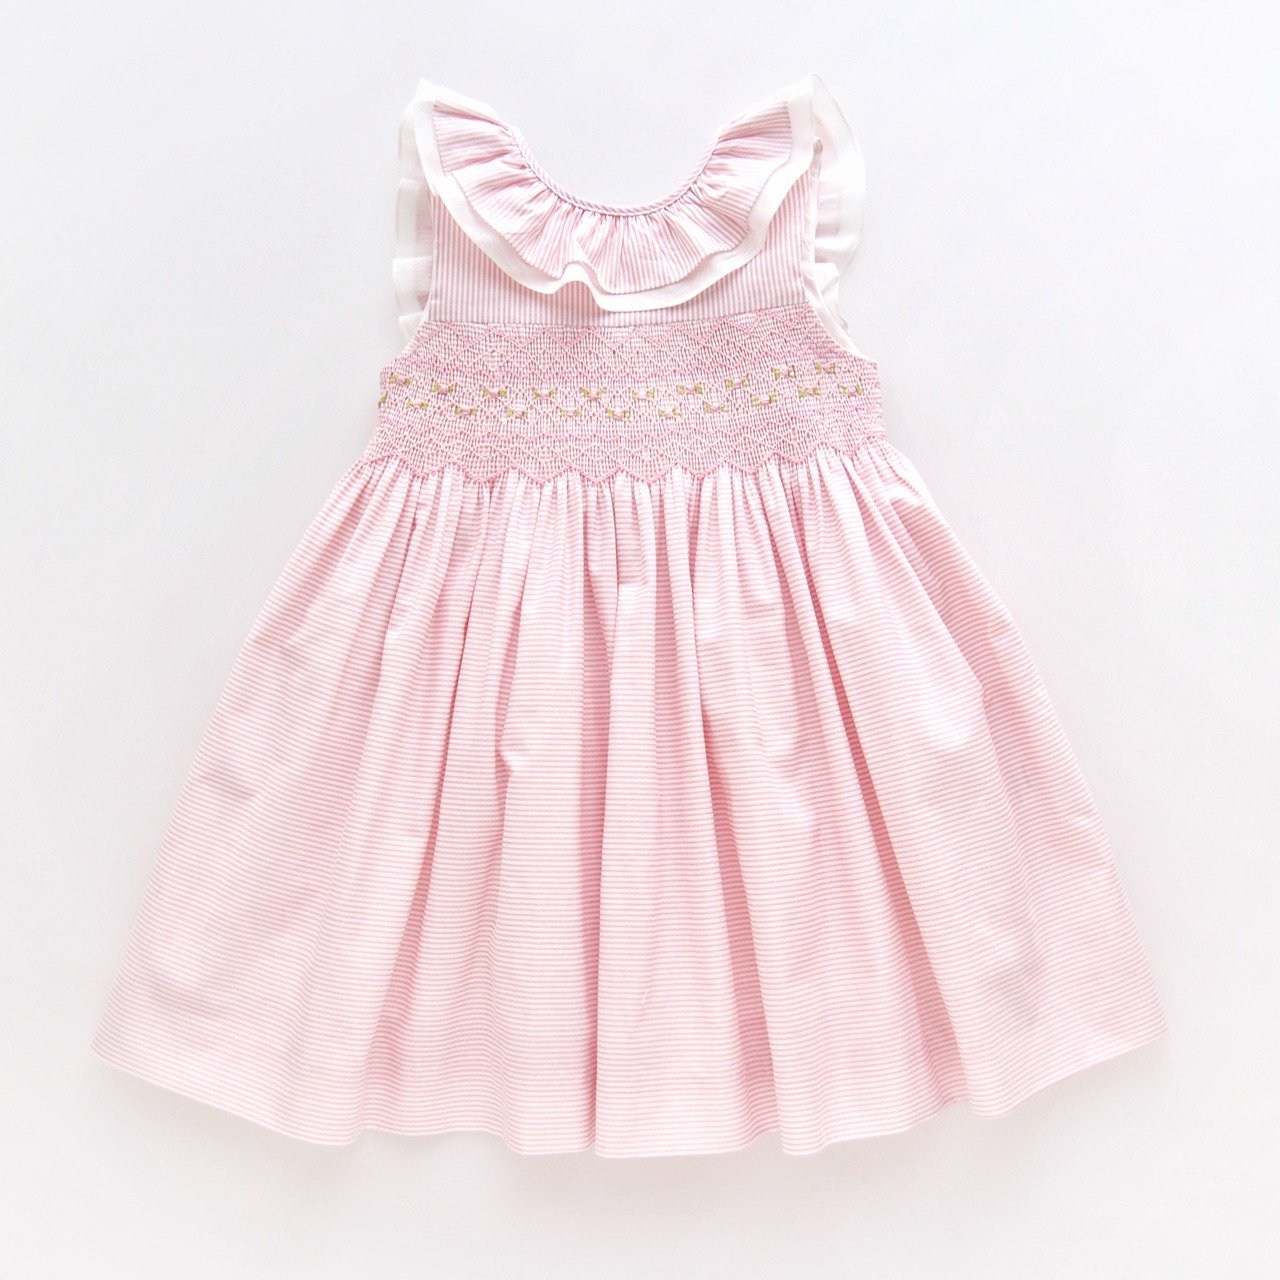 <img class='new_mark_img1' src='https://img.shop-pro.jp/img/new/icons14.gif' style='border:none;display:inline;margin:0px;padding:0px;width:auto;' />Kidiwi - MELINA dress (Pink pinstripes)